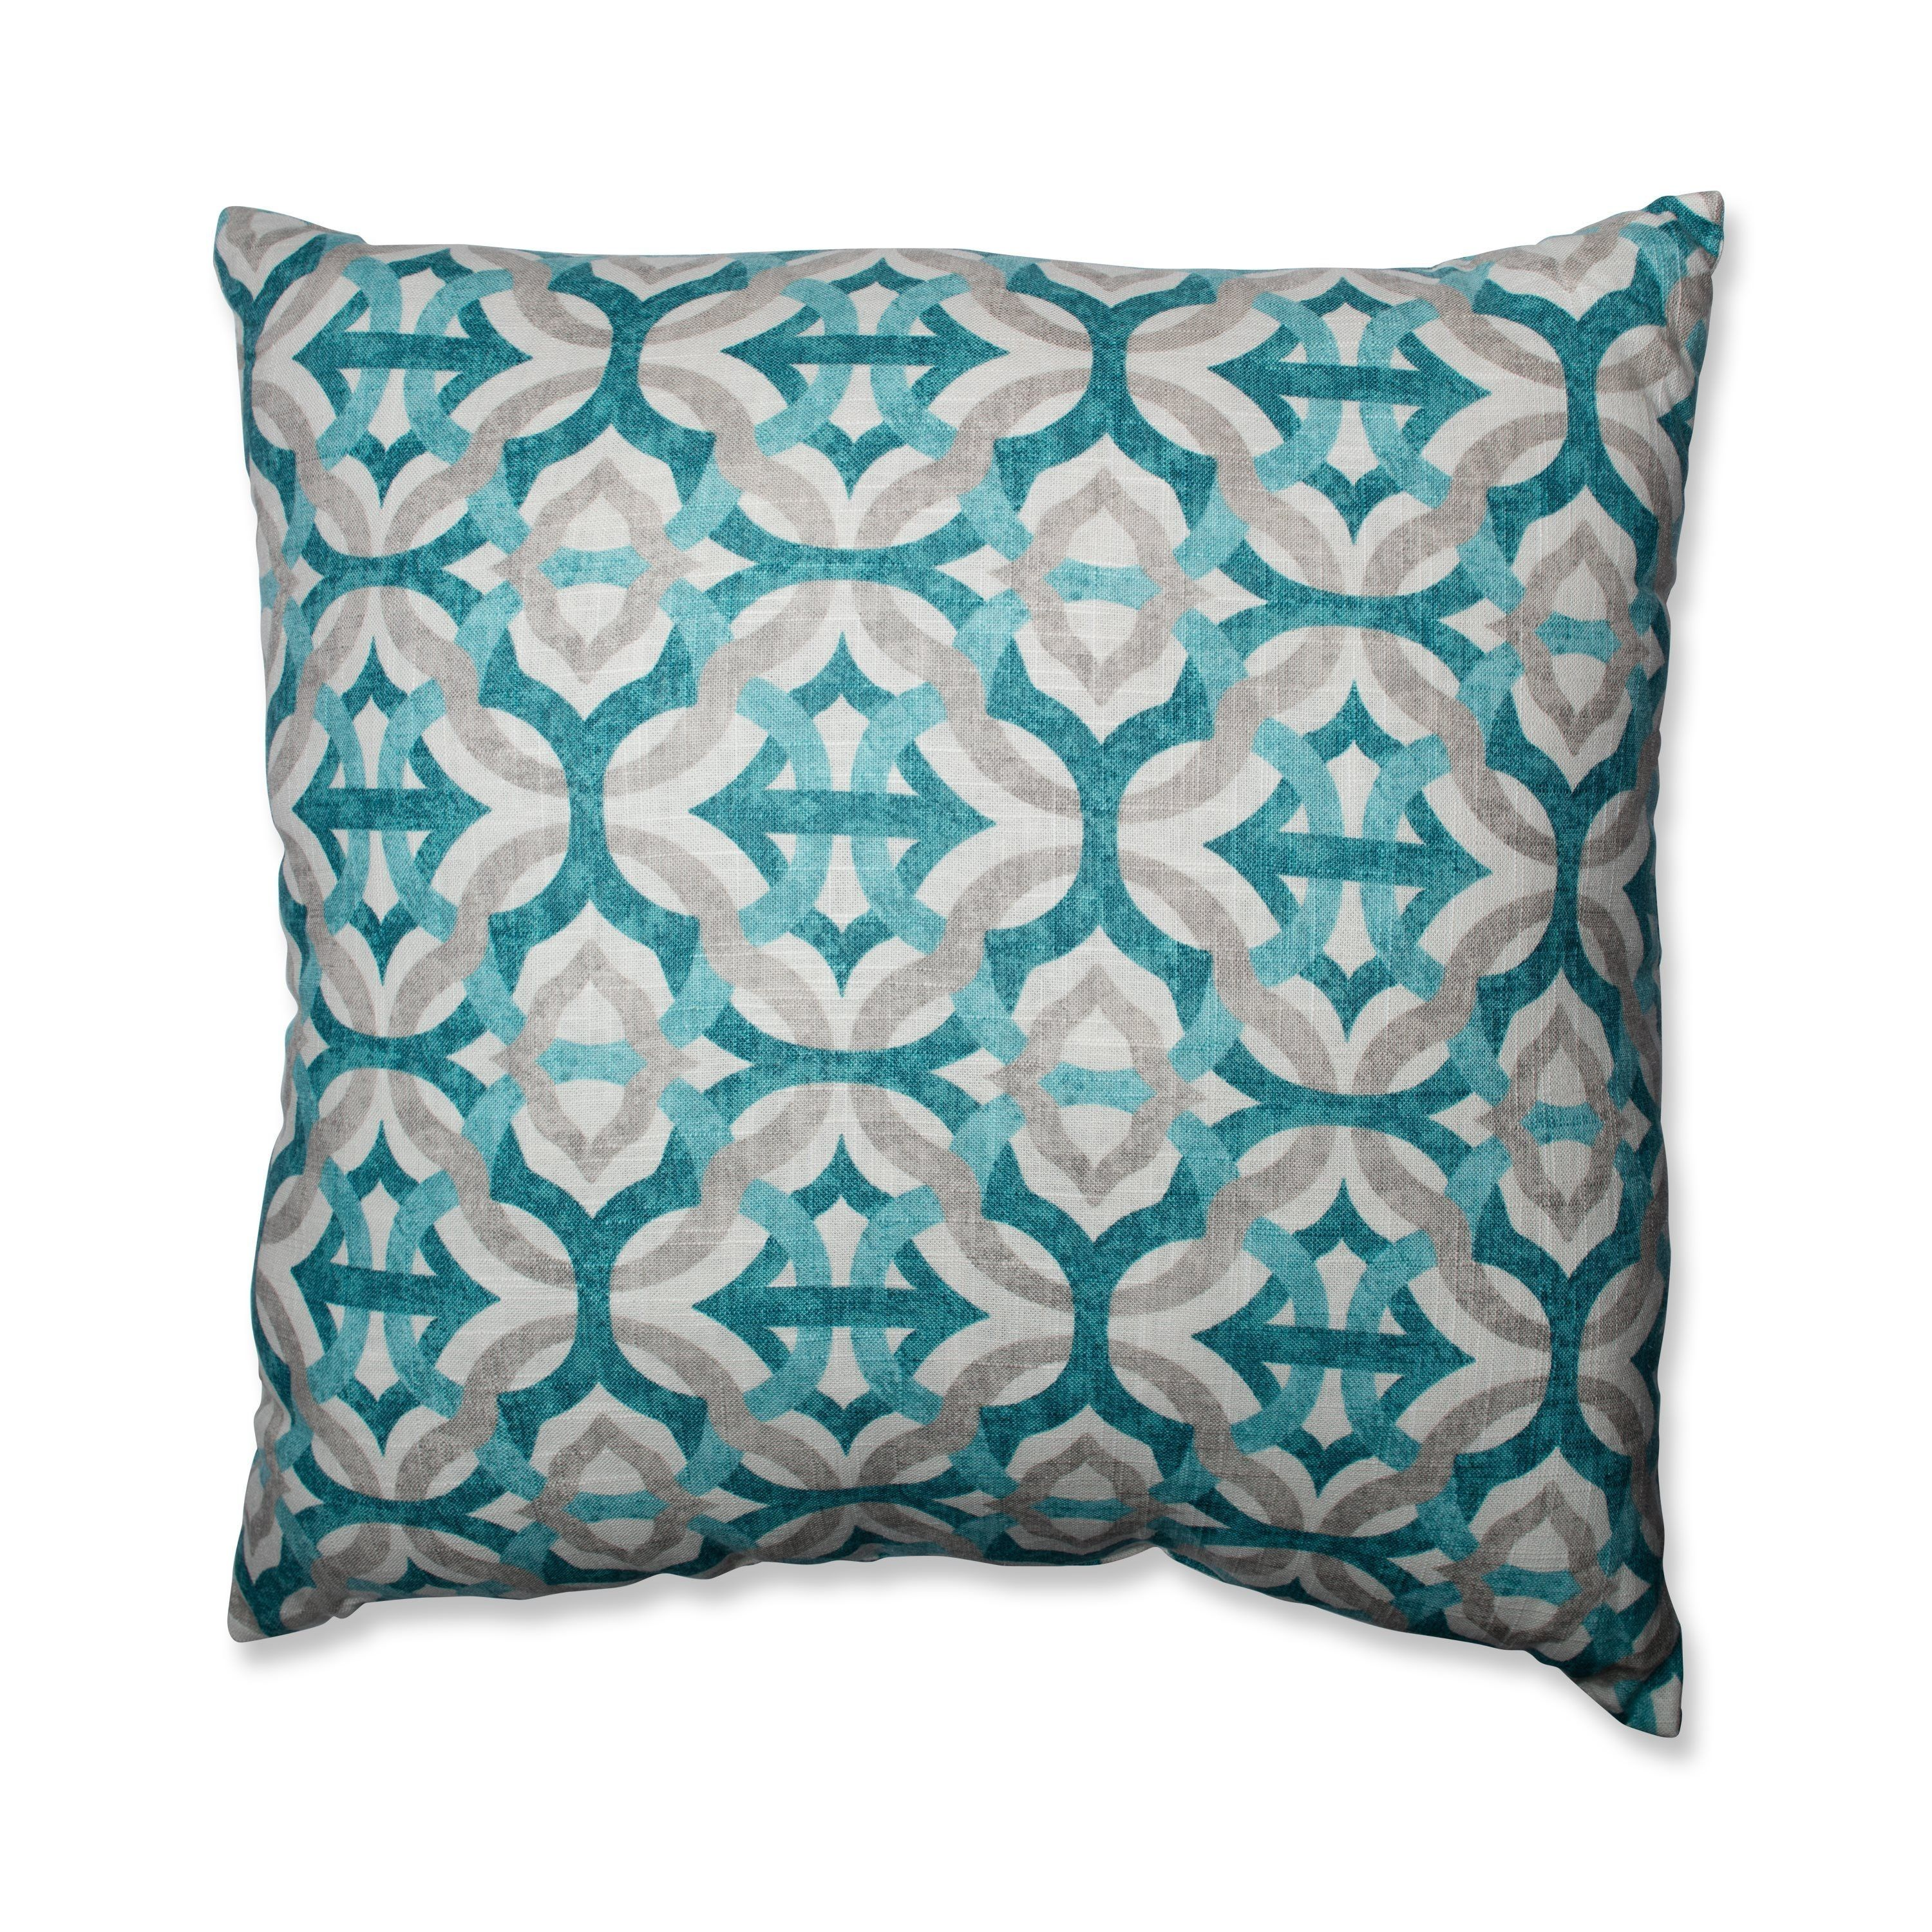 Teal Pillows Home Goods : Free Shipping on orders over $45 ...